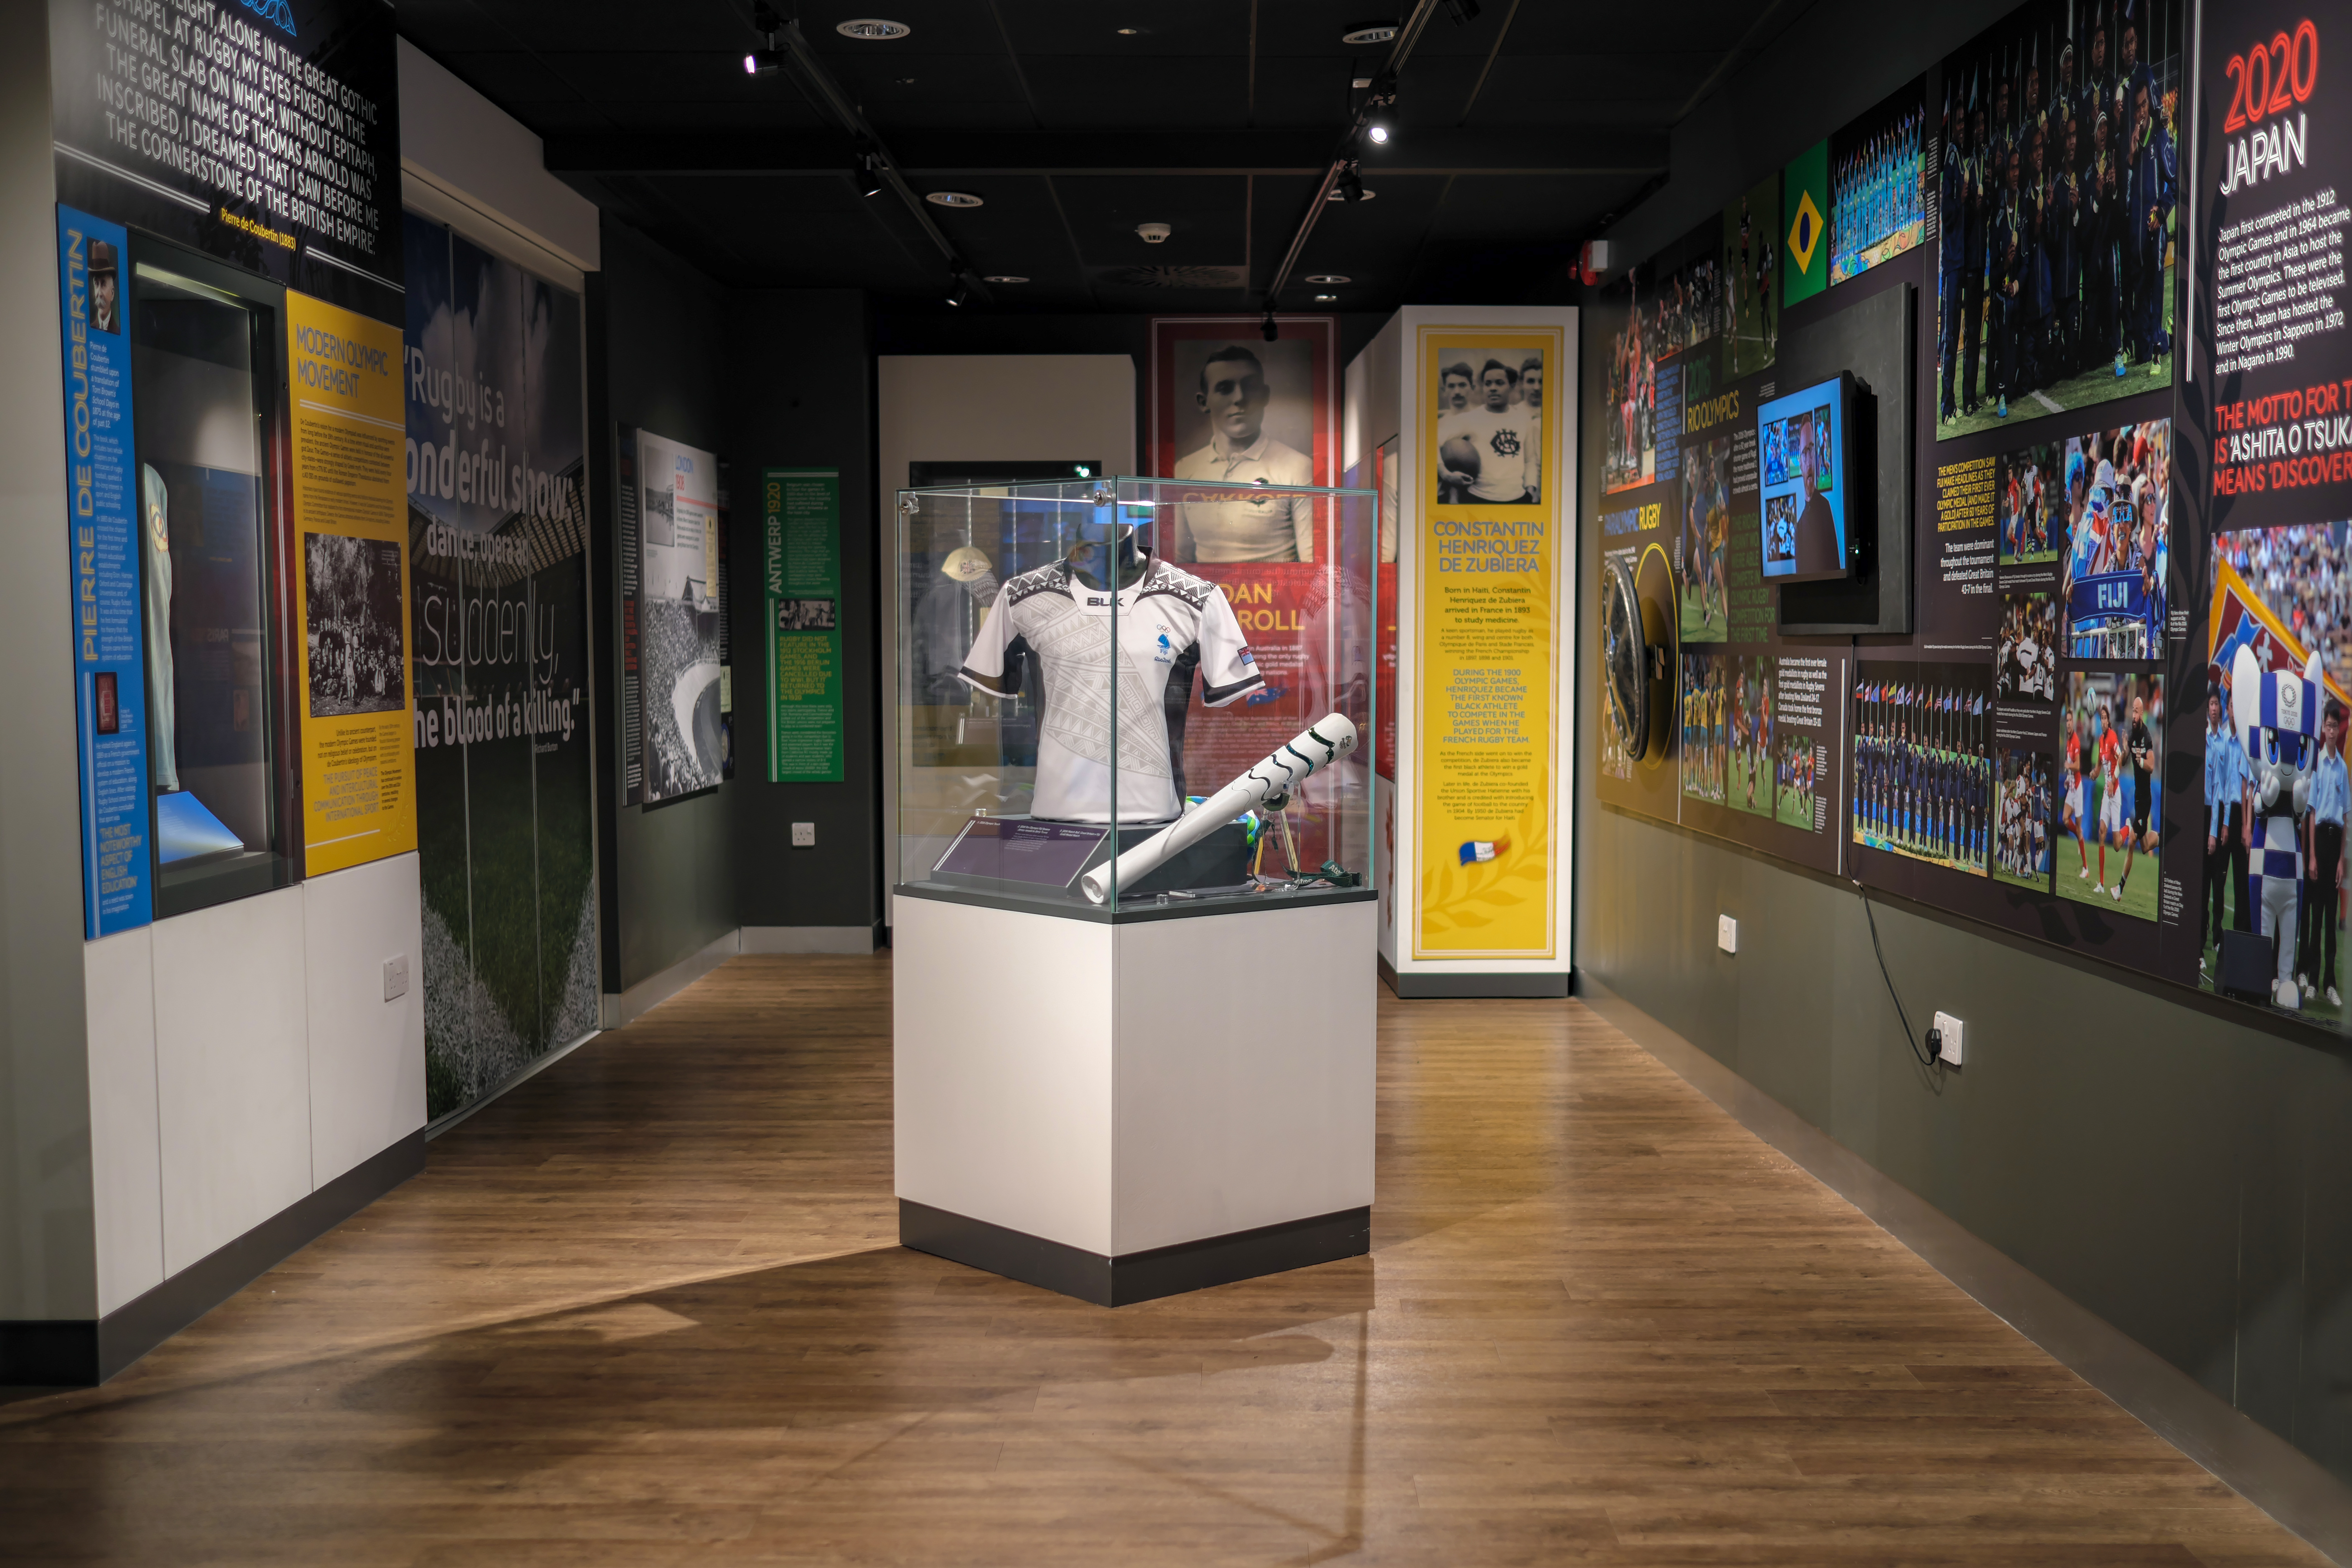 Rugby and the Olympics exhibition at the World Rugby Museum. Image of exhibition room with display cases.